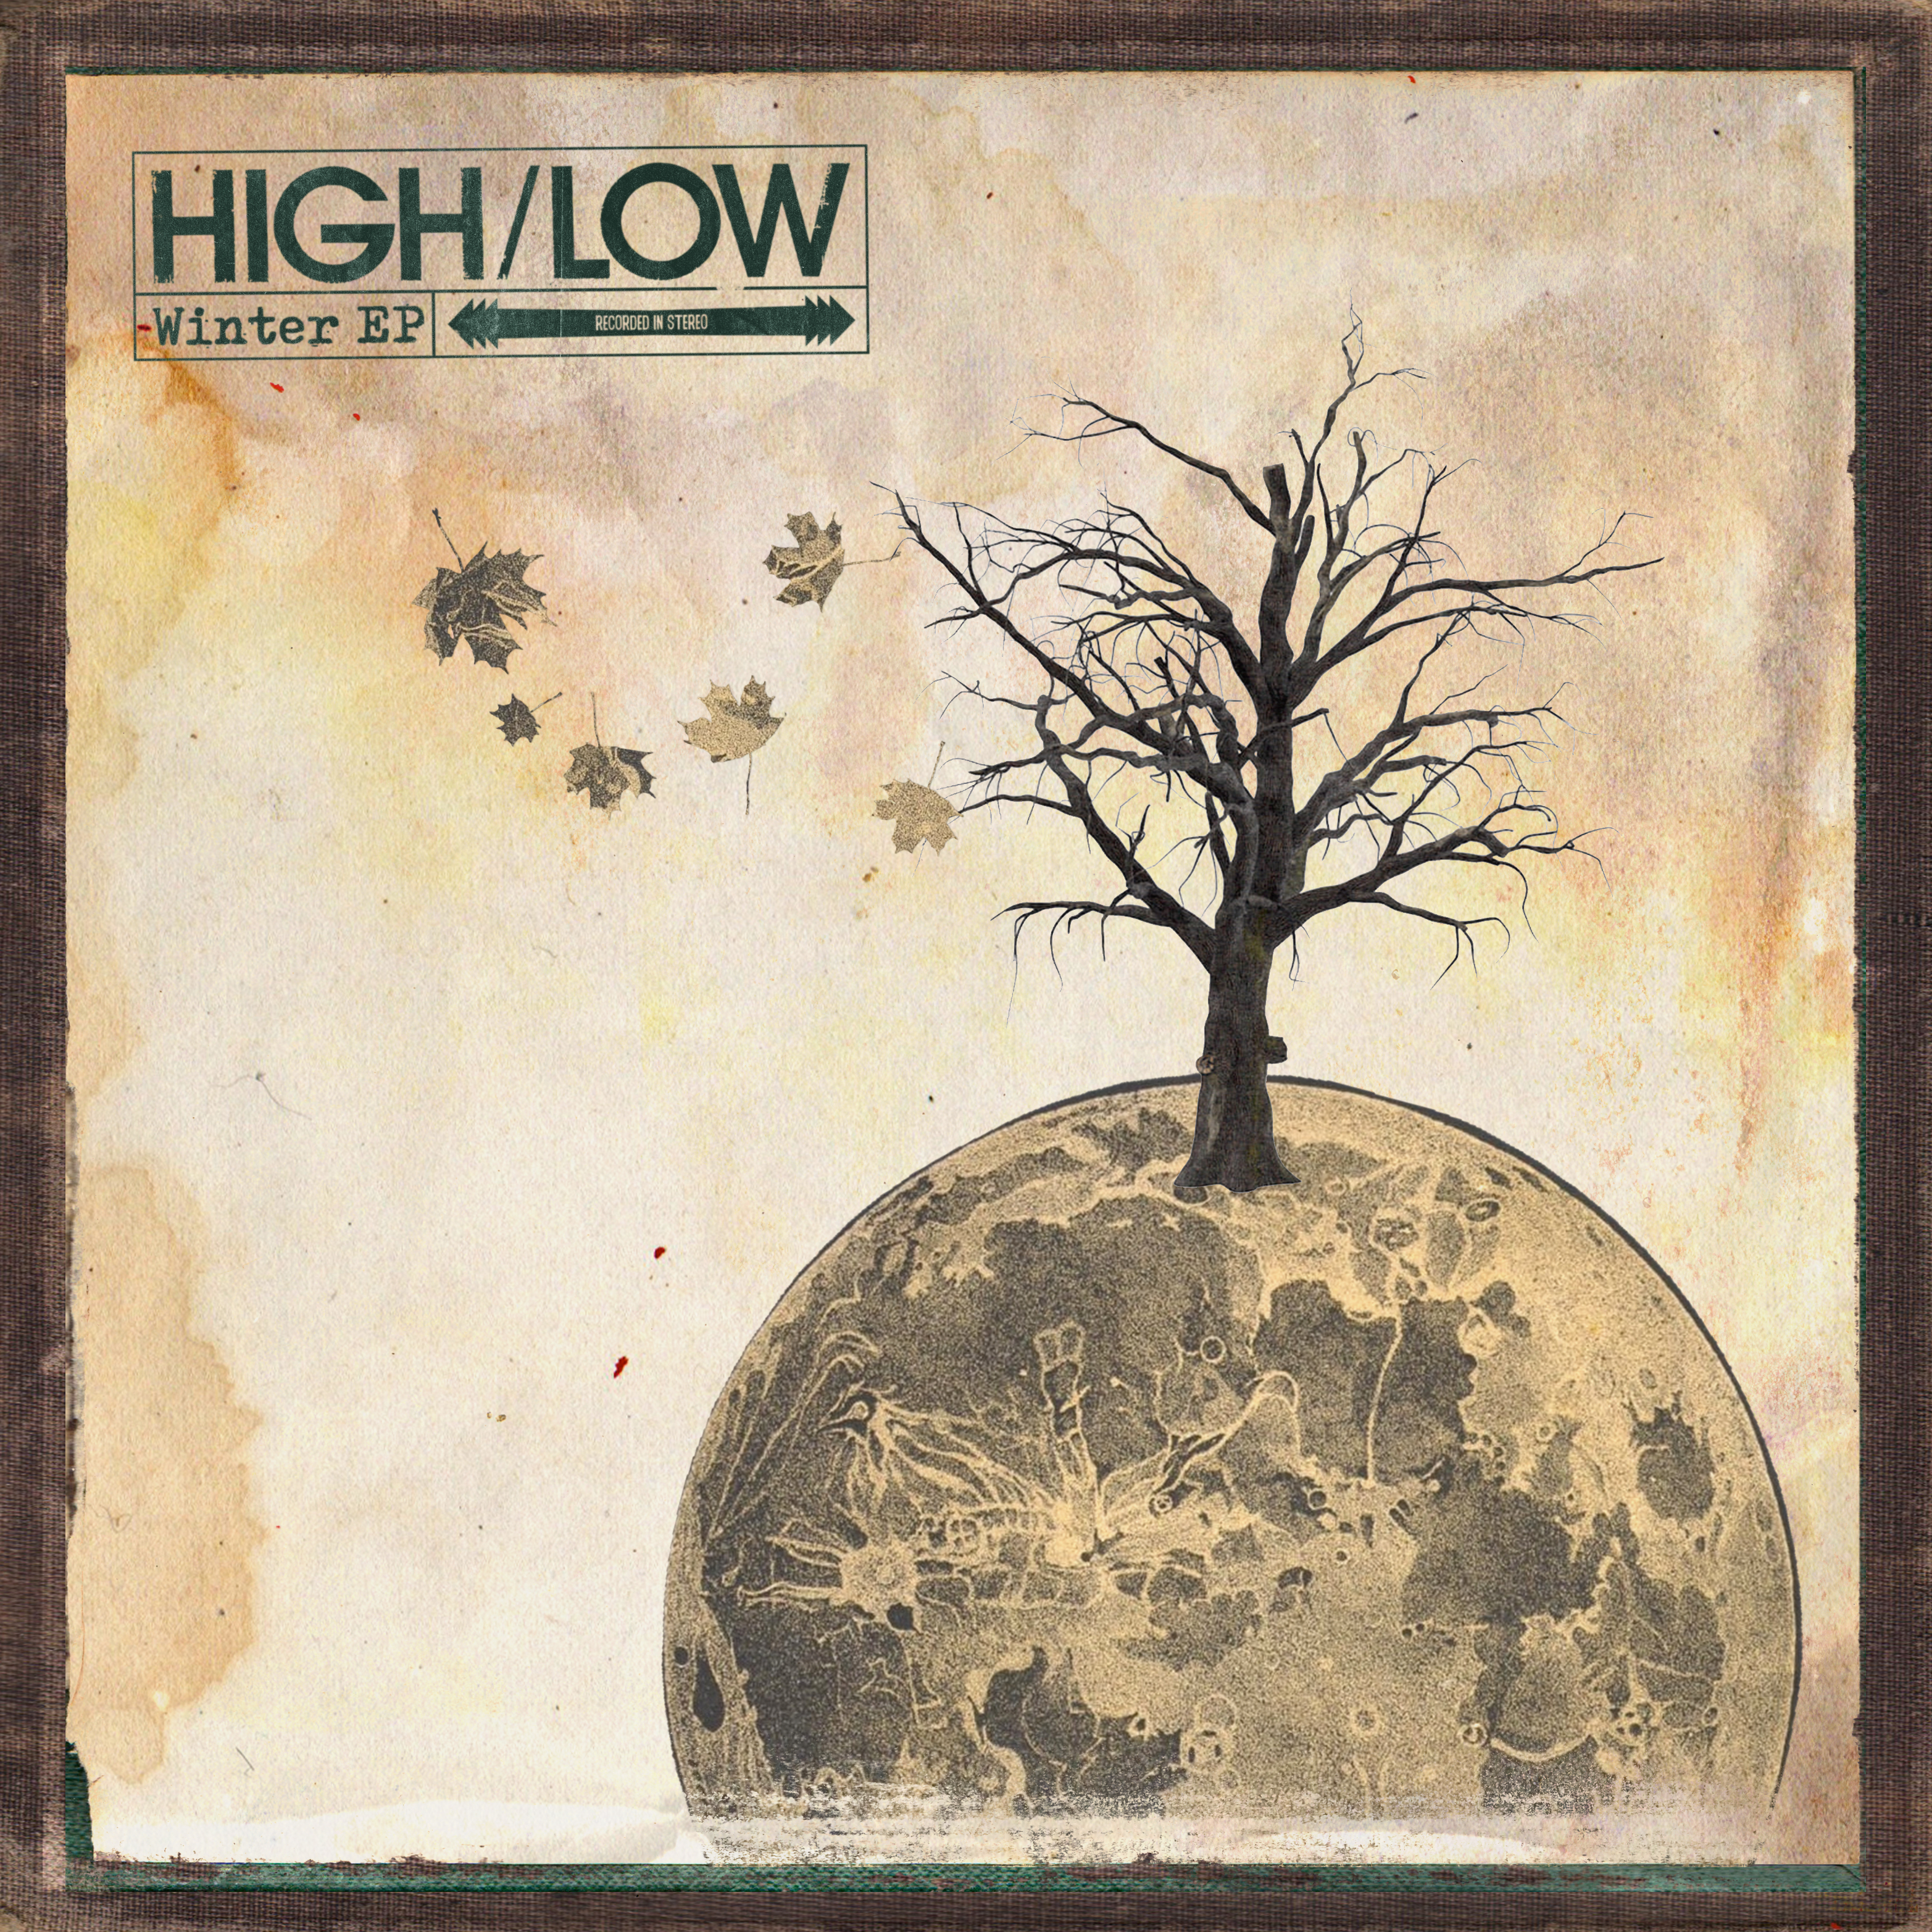 High/Low – Winter EP